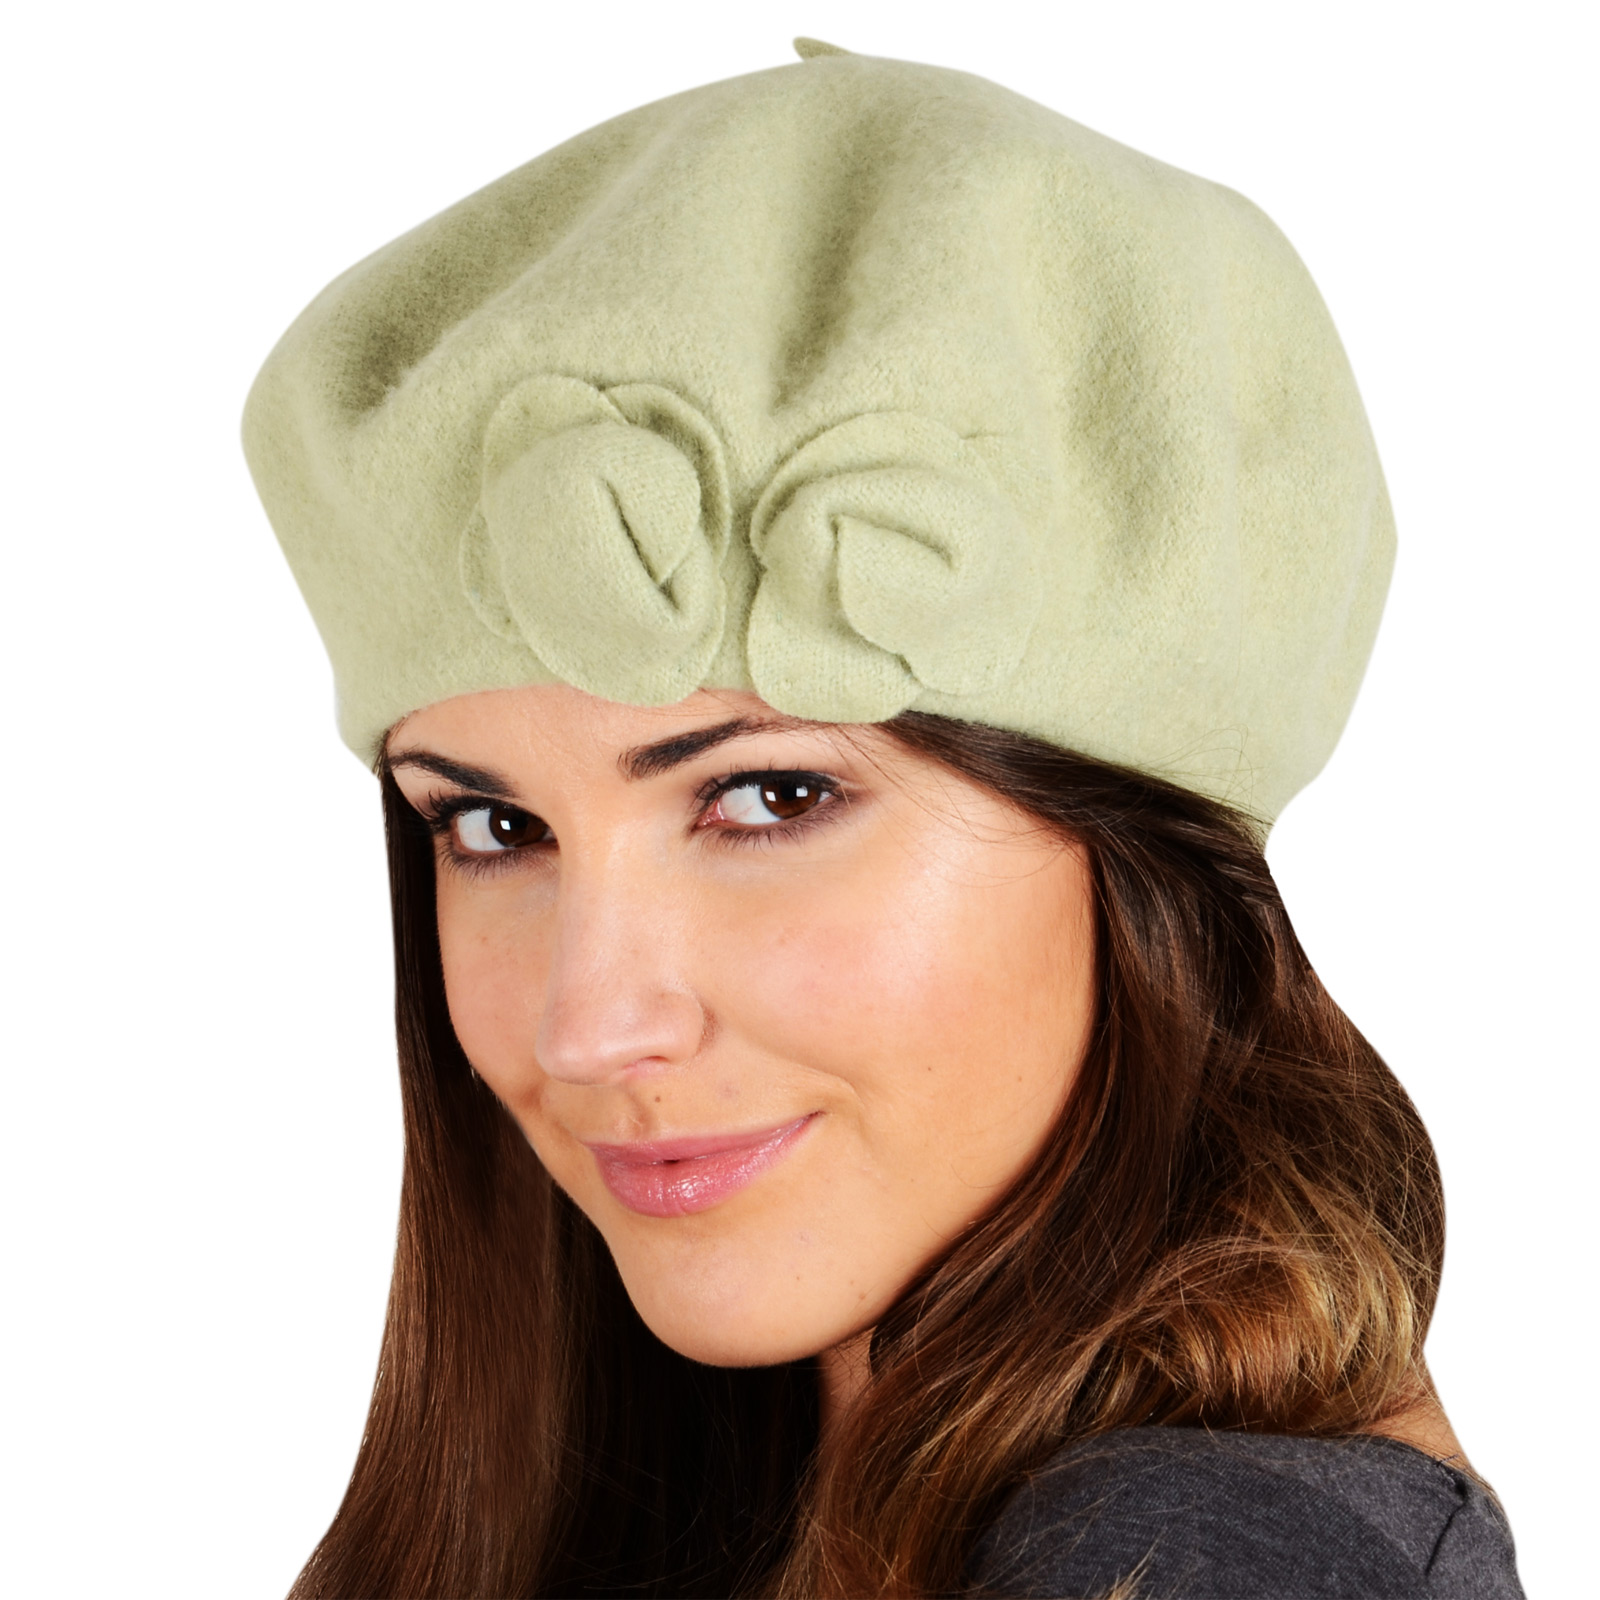 Keep your style top notch with this velvet beret hat. It features an adjustable inner drawstring to provide you with the perfect fit and the soft velvet is trendy and feels comfortable against your skin.